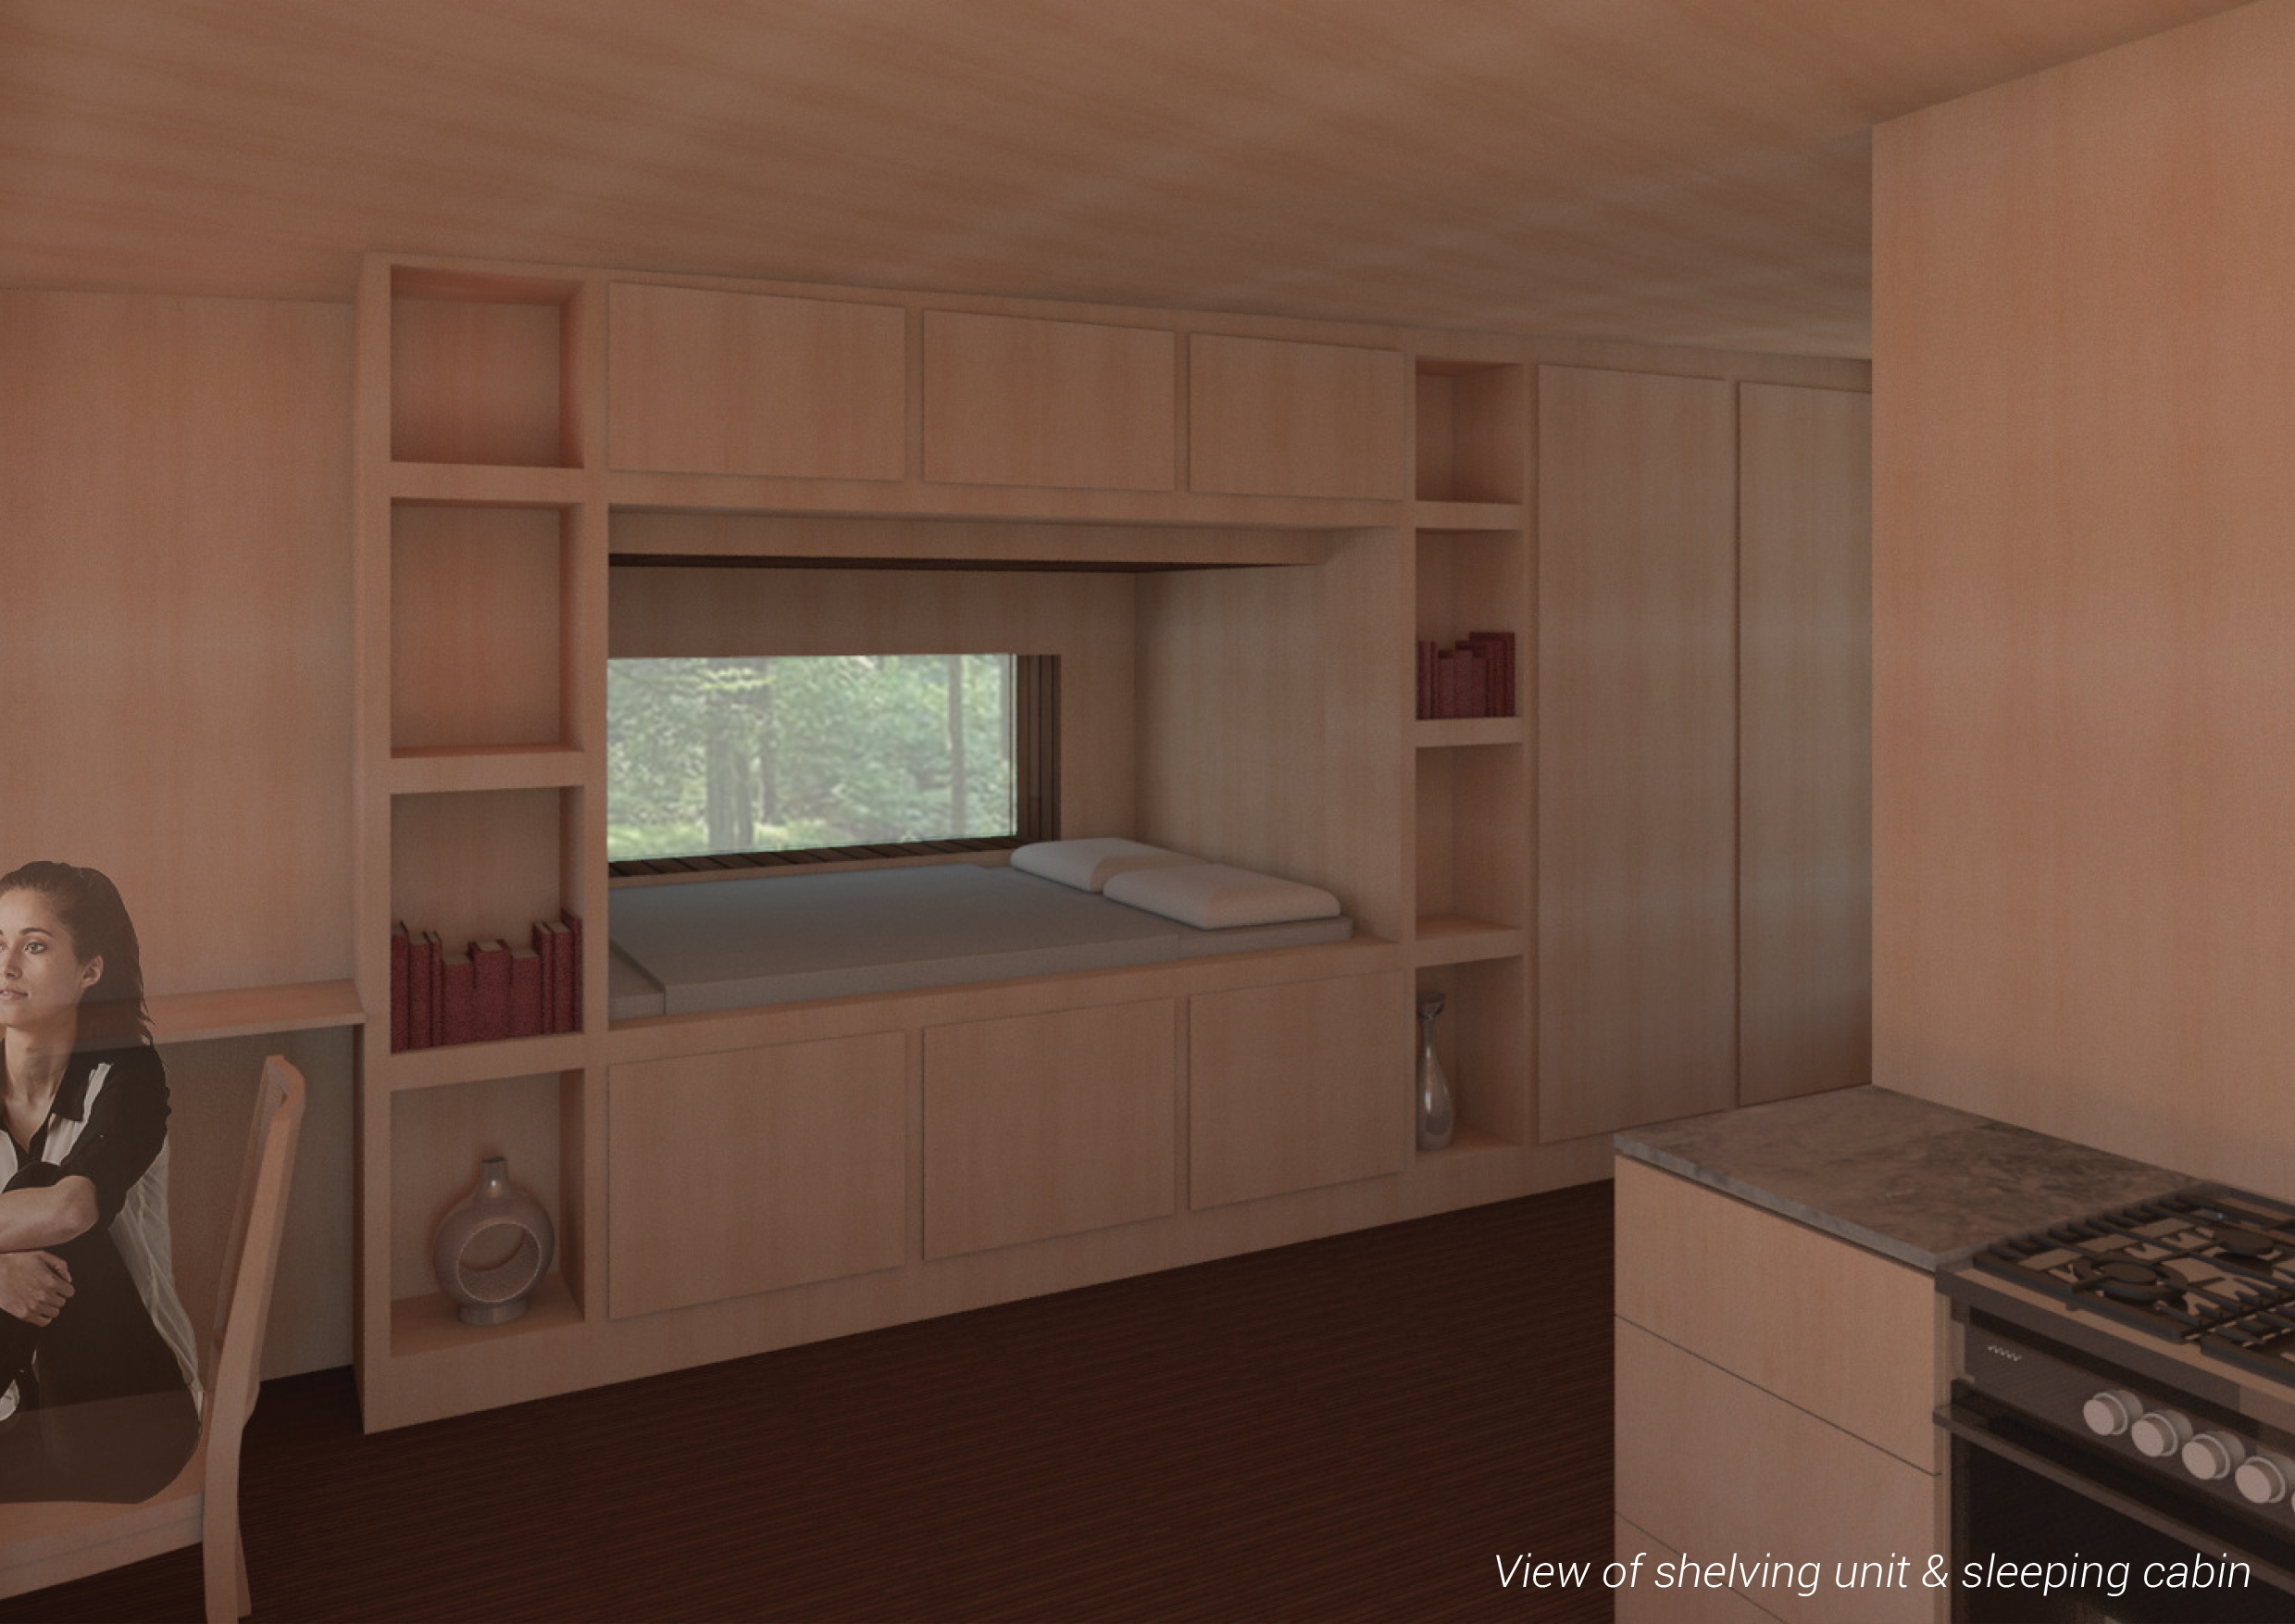 render1 - for homepage